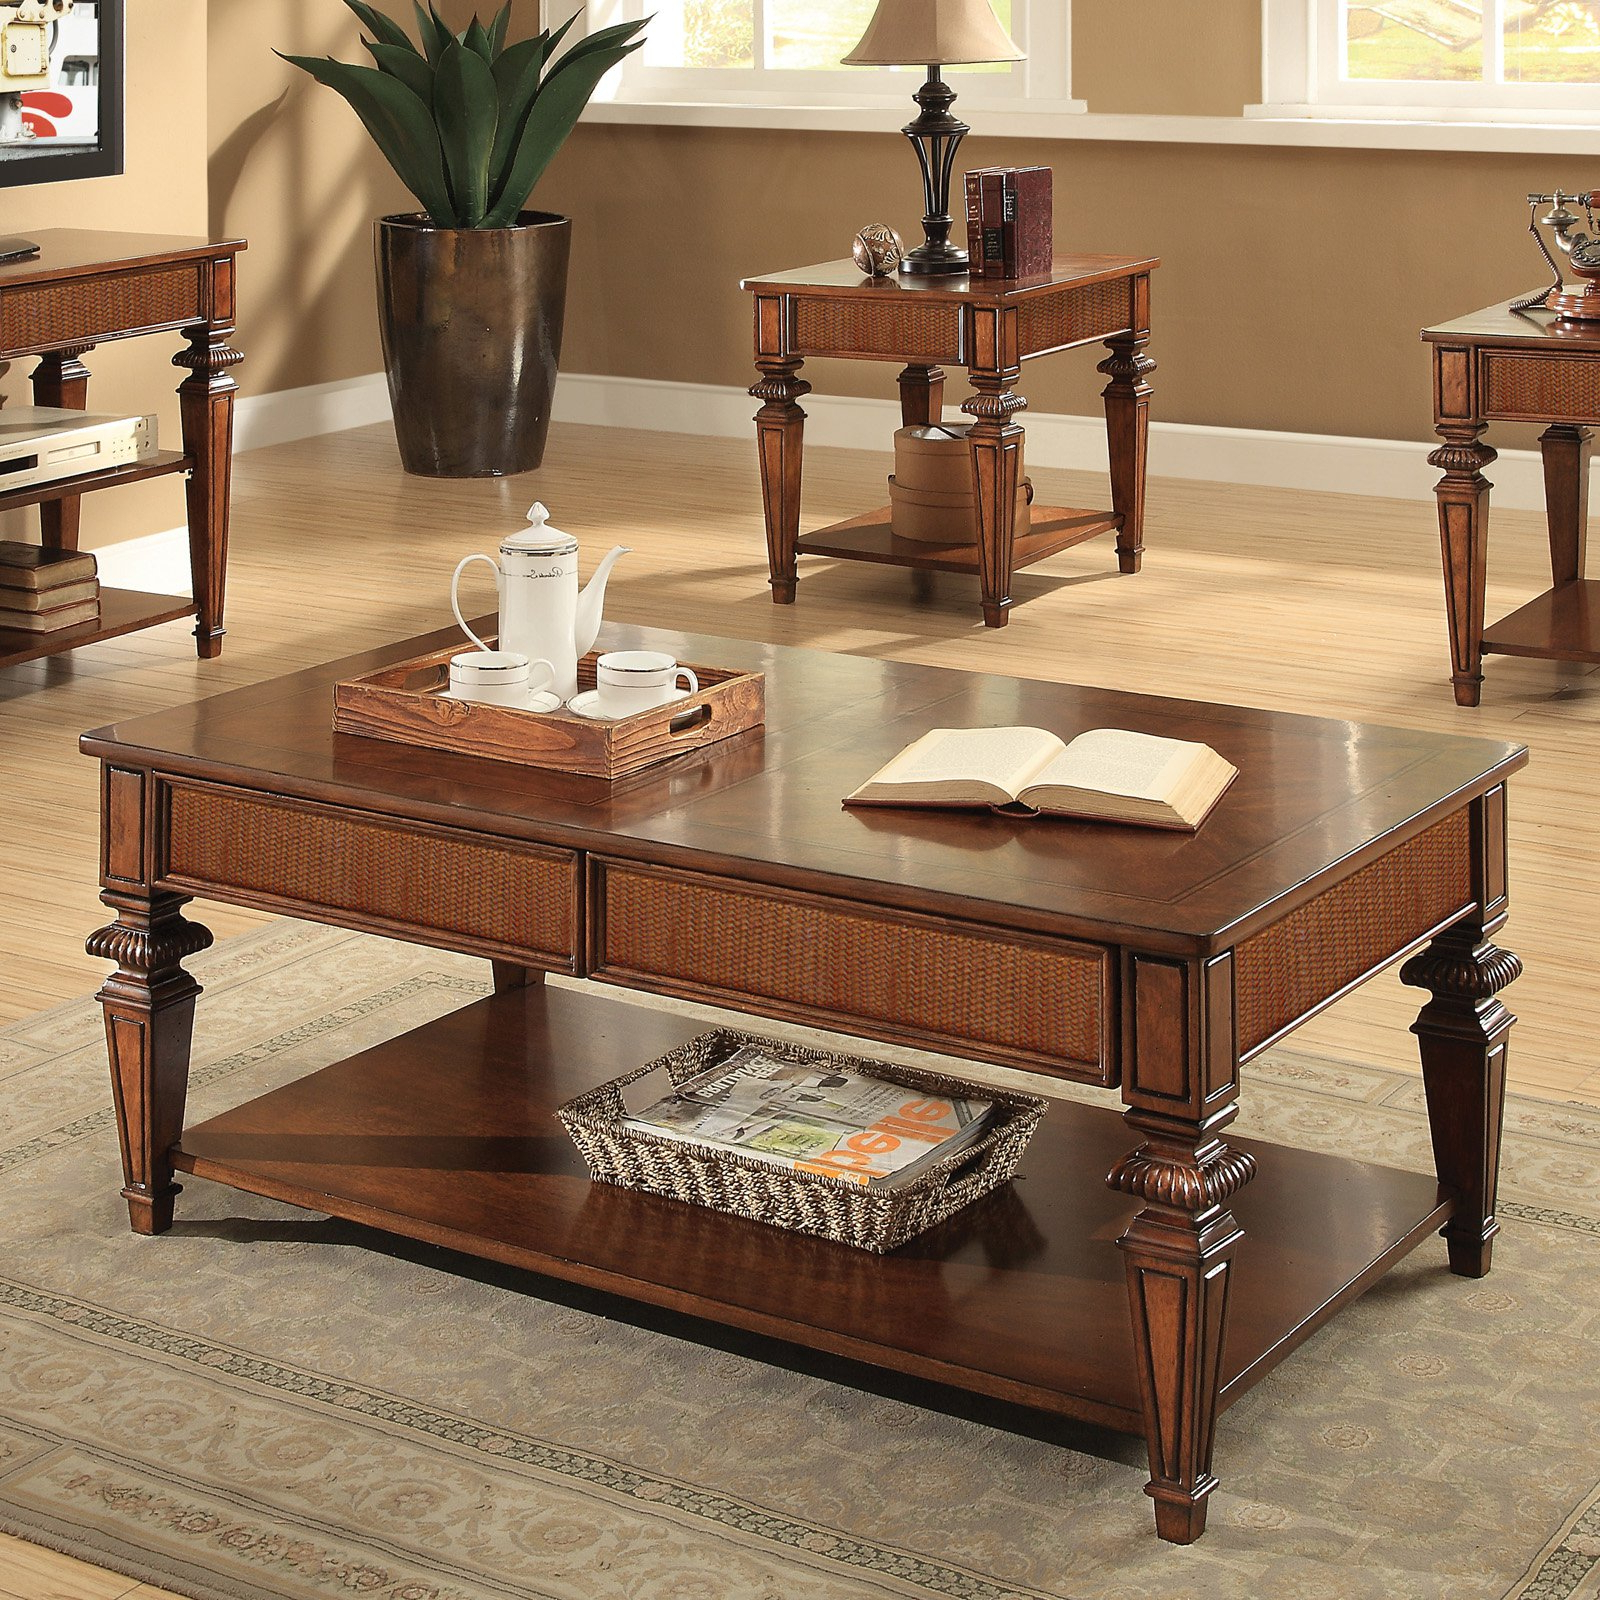 Riverside Windward Bay Rectangular Cocktail Table – Warm Rum Intended For Recent Jessa Rustic Country 54 Inch Coffee Tables (View 11 of 20)